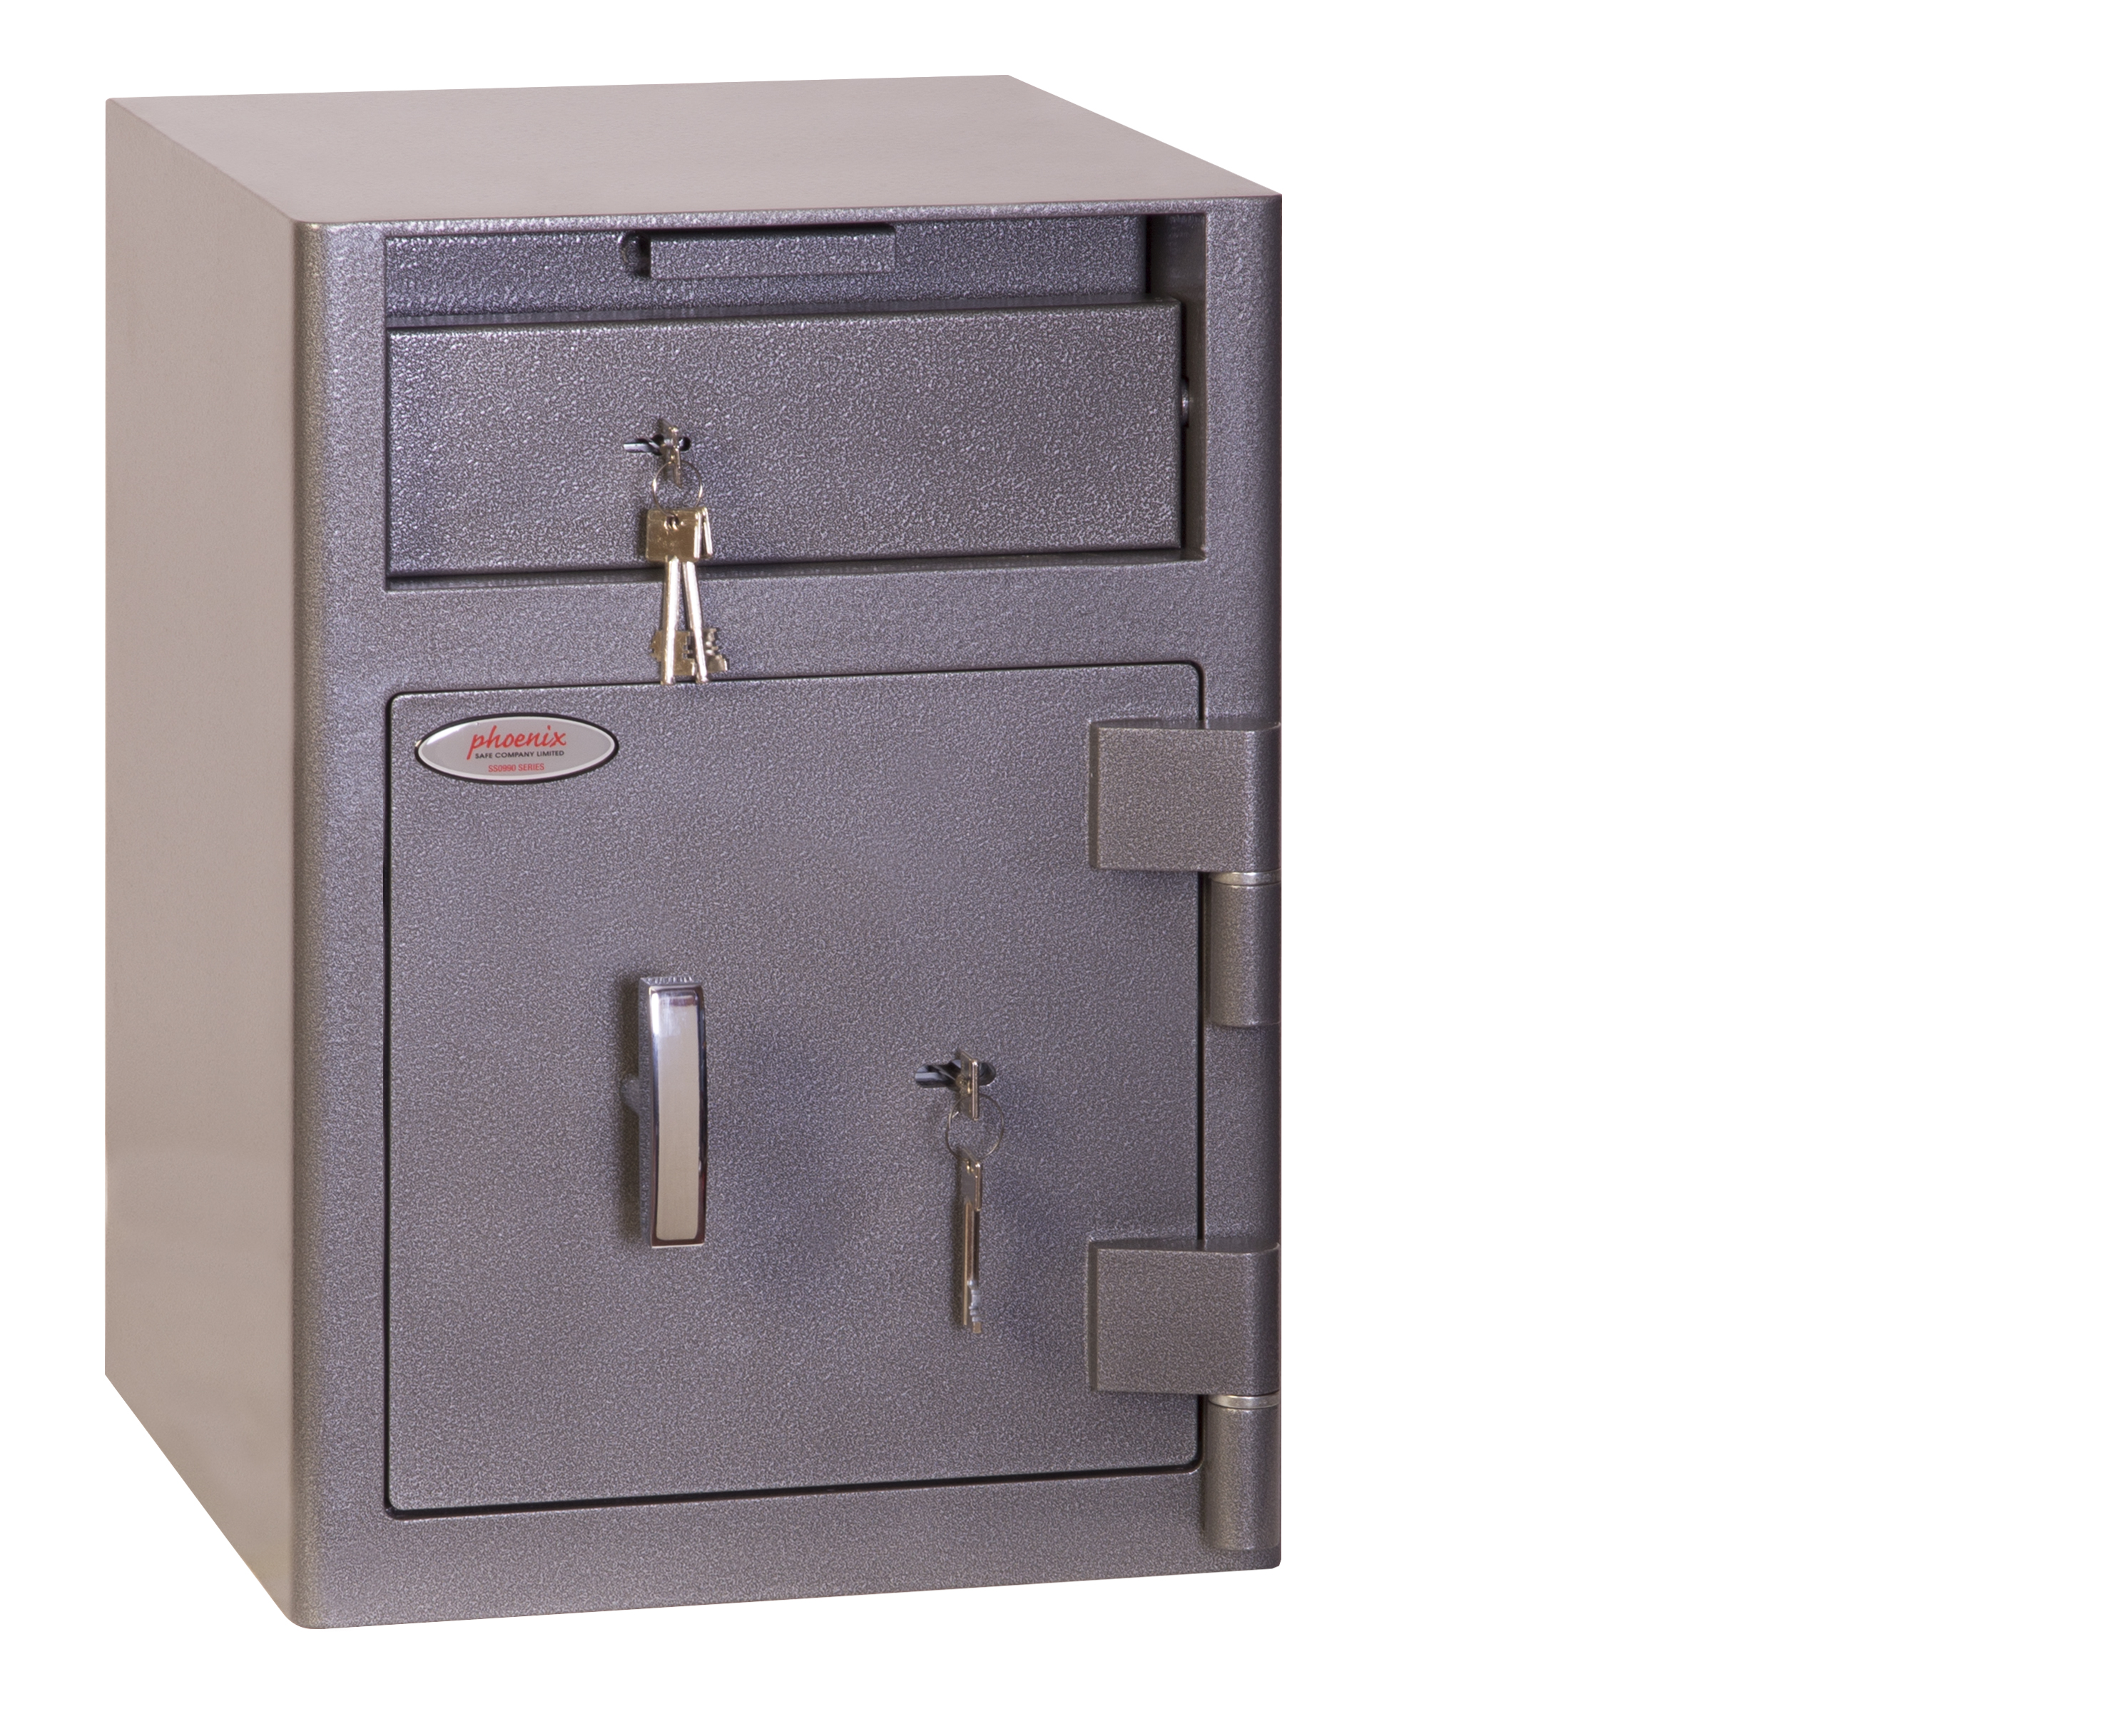 Safes Phoenix Cash Deposit Size 1 Security Safe with Key Lock